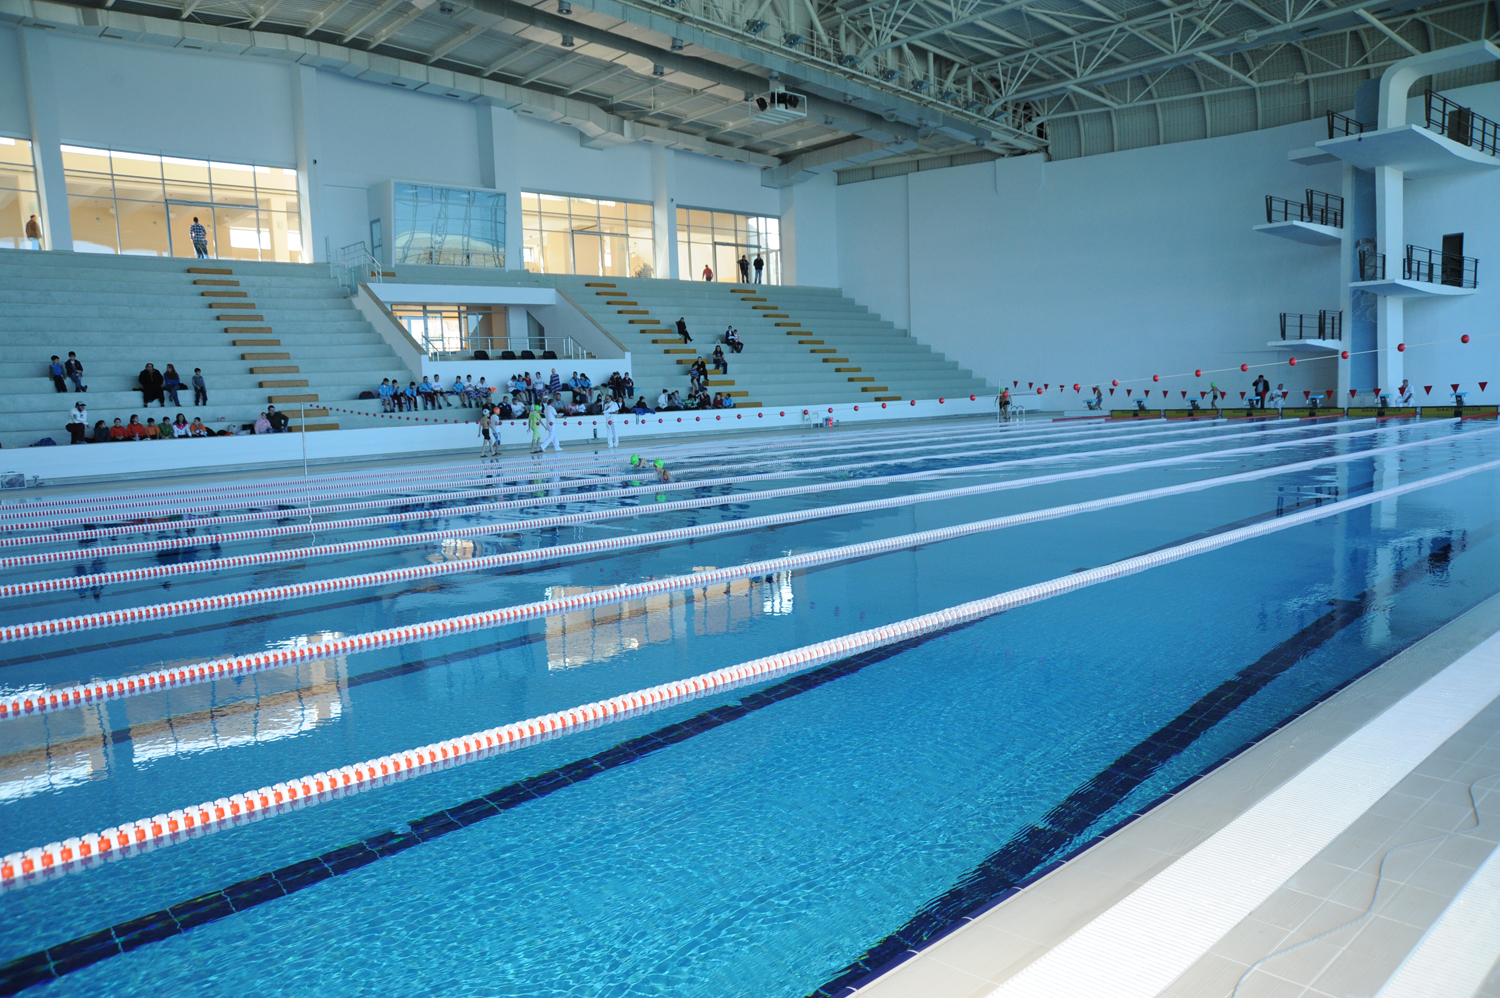 Mehmet Akif Ersoy Indoor Swimming Pool - Wikipedia